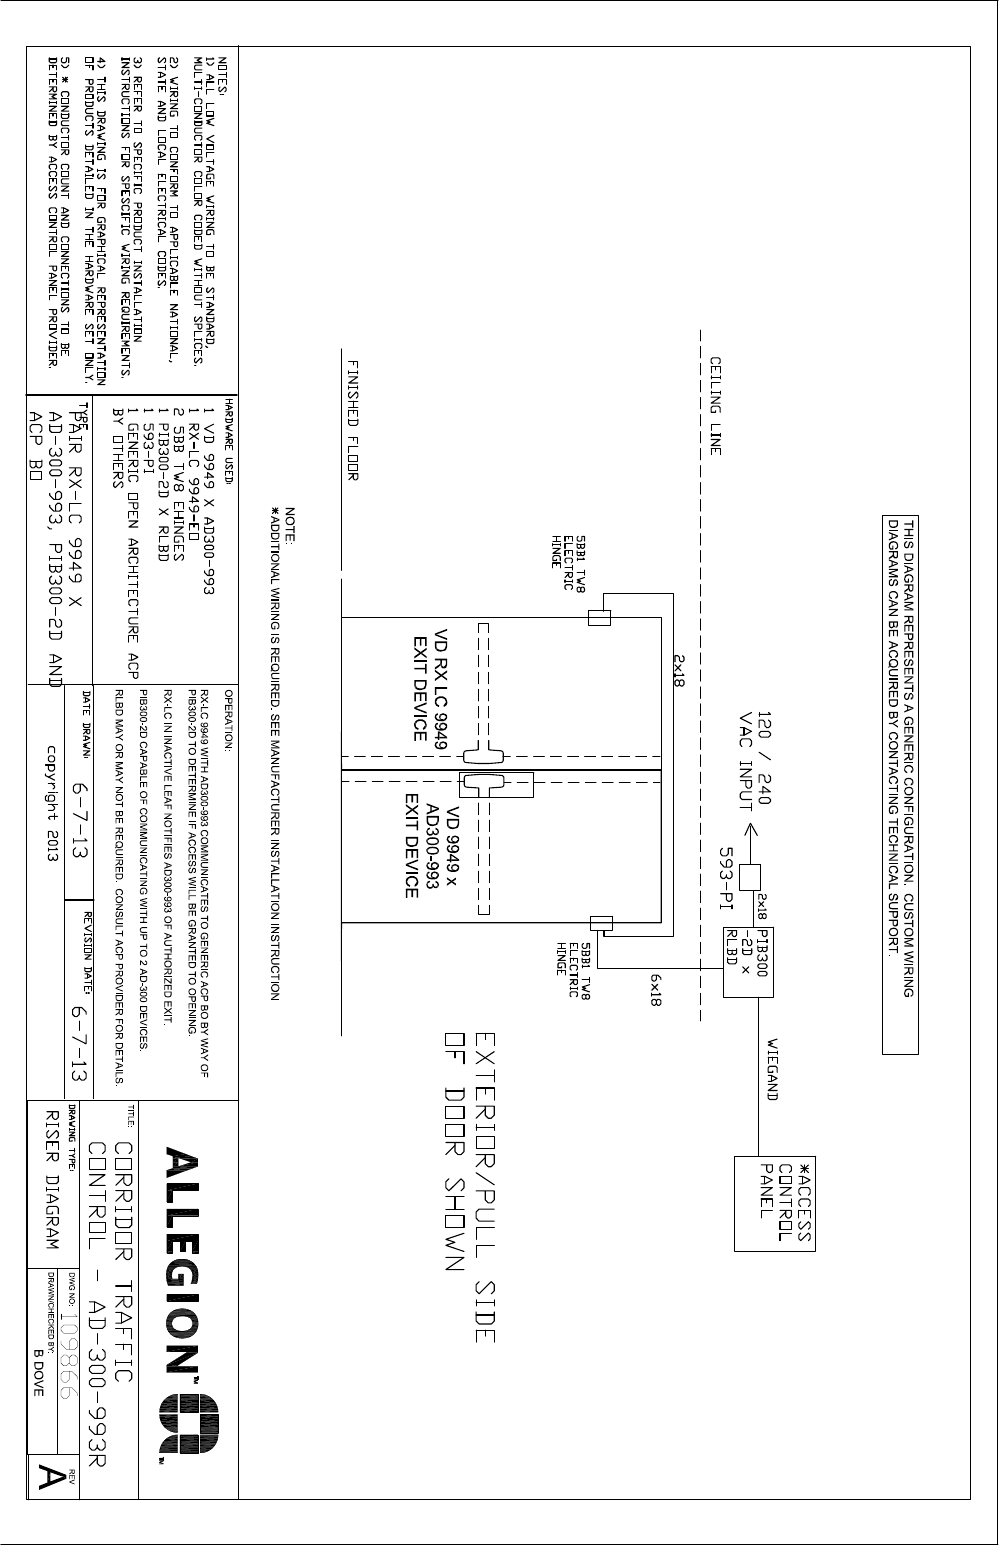 Yale Mpb040acn24c2748 Wiring Diagram Trusted Diagrams Schematic Series And Parallel Circuits Mpb040 E